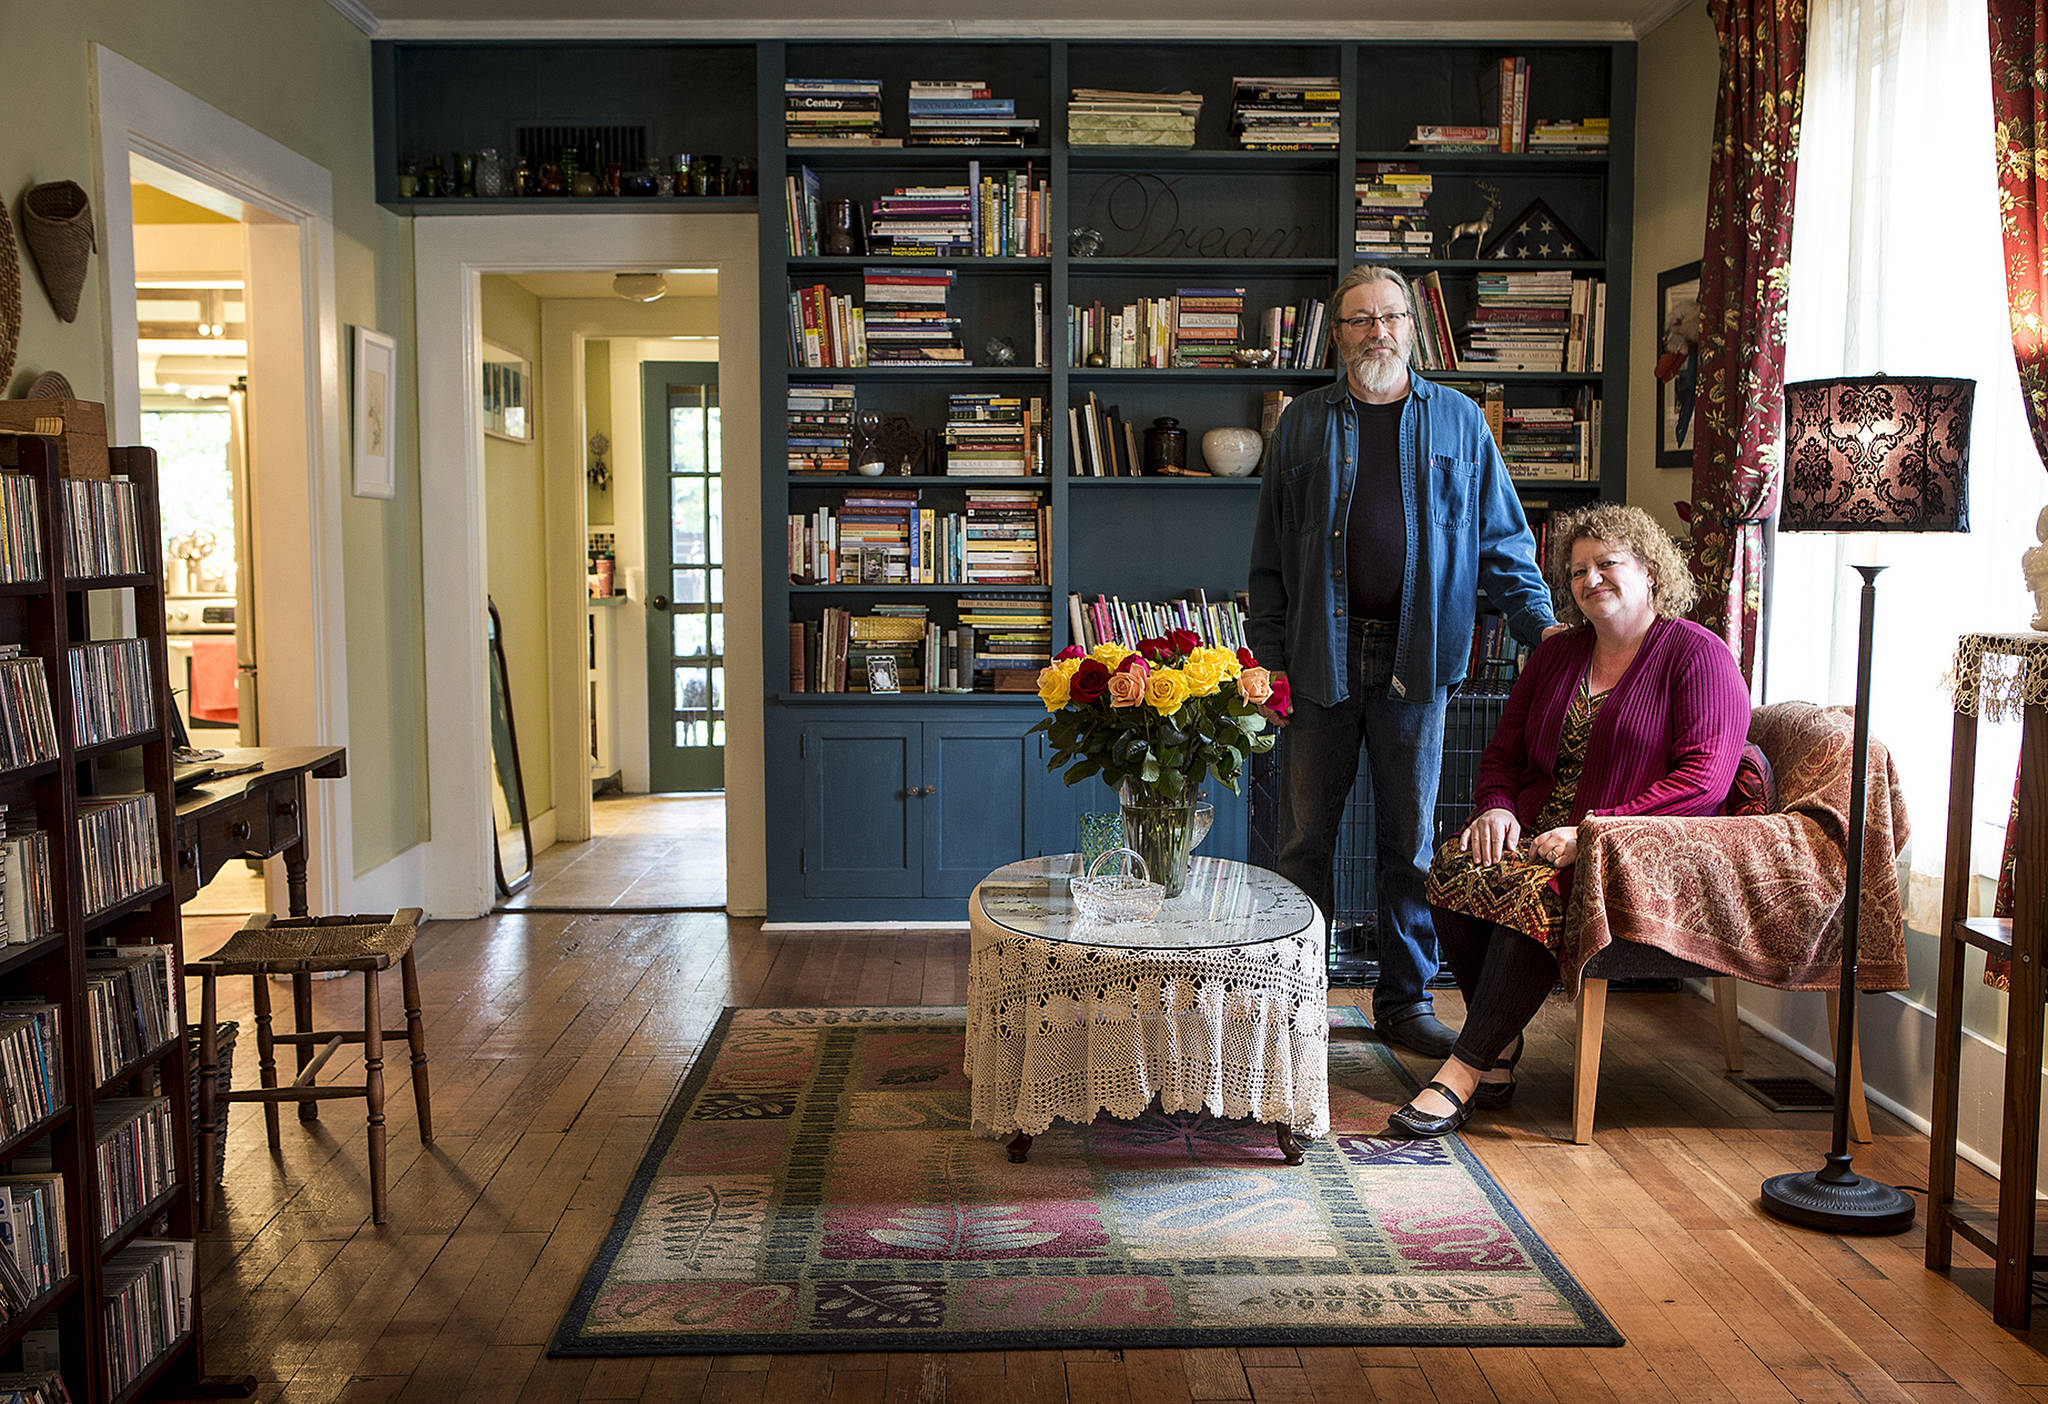 Wendy Keene and Tim Schultz get cozy in their Monroe home . The couple renovated the house, originally built in 1903, while keeping many of its charms. (Ian Terry / The Herald)